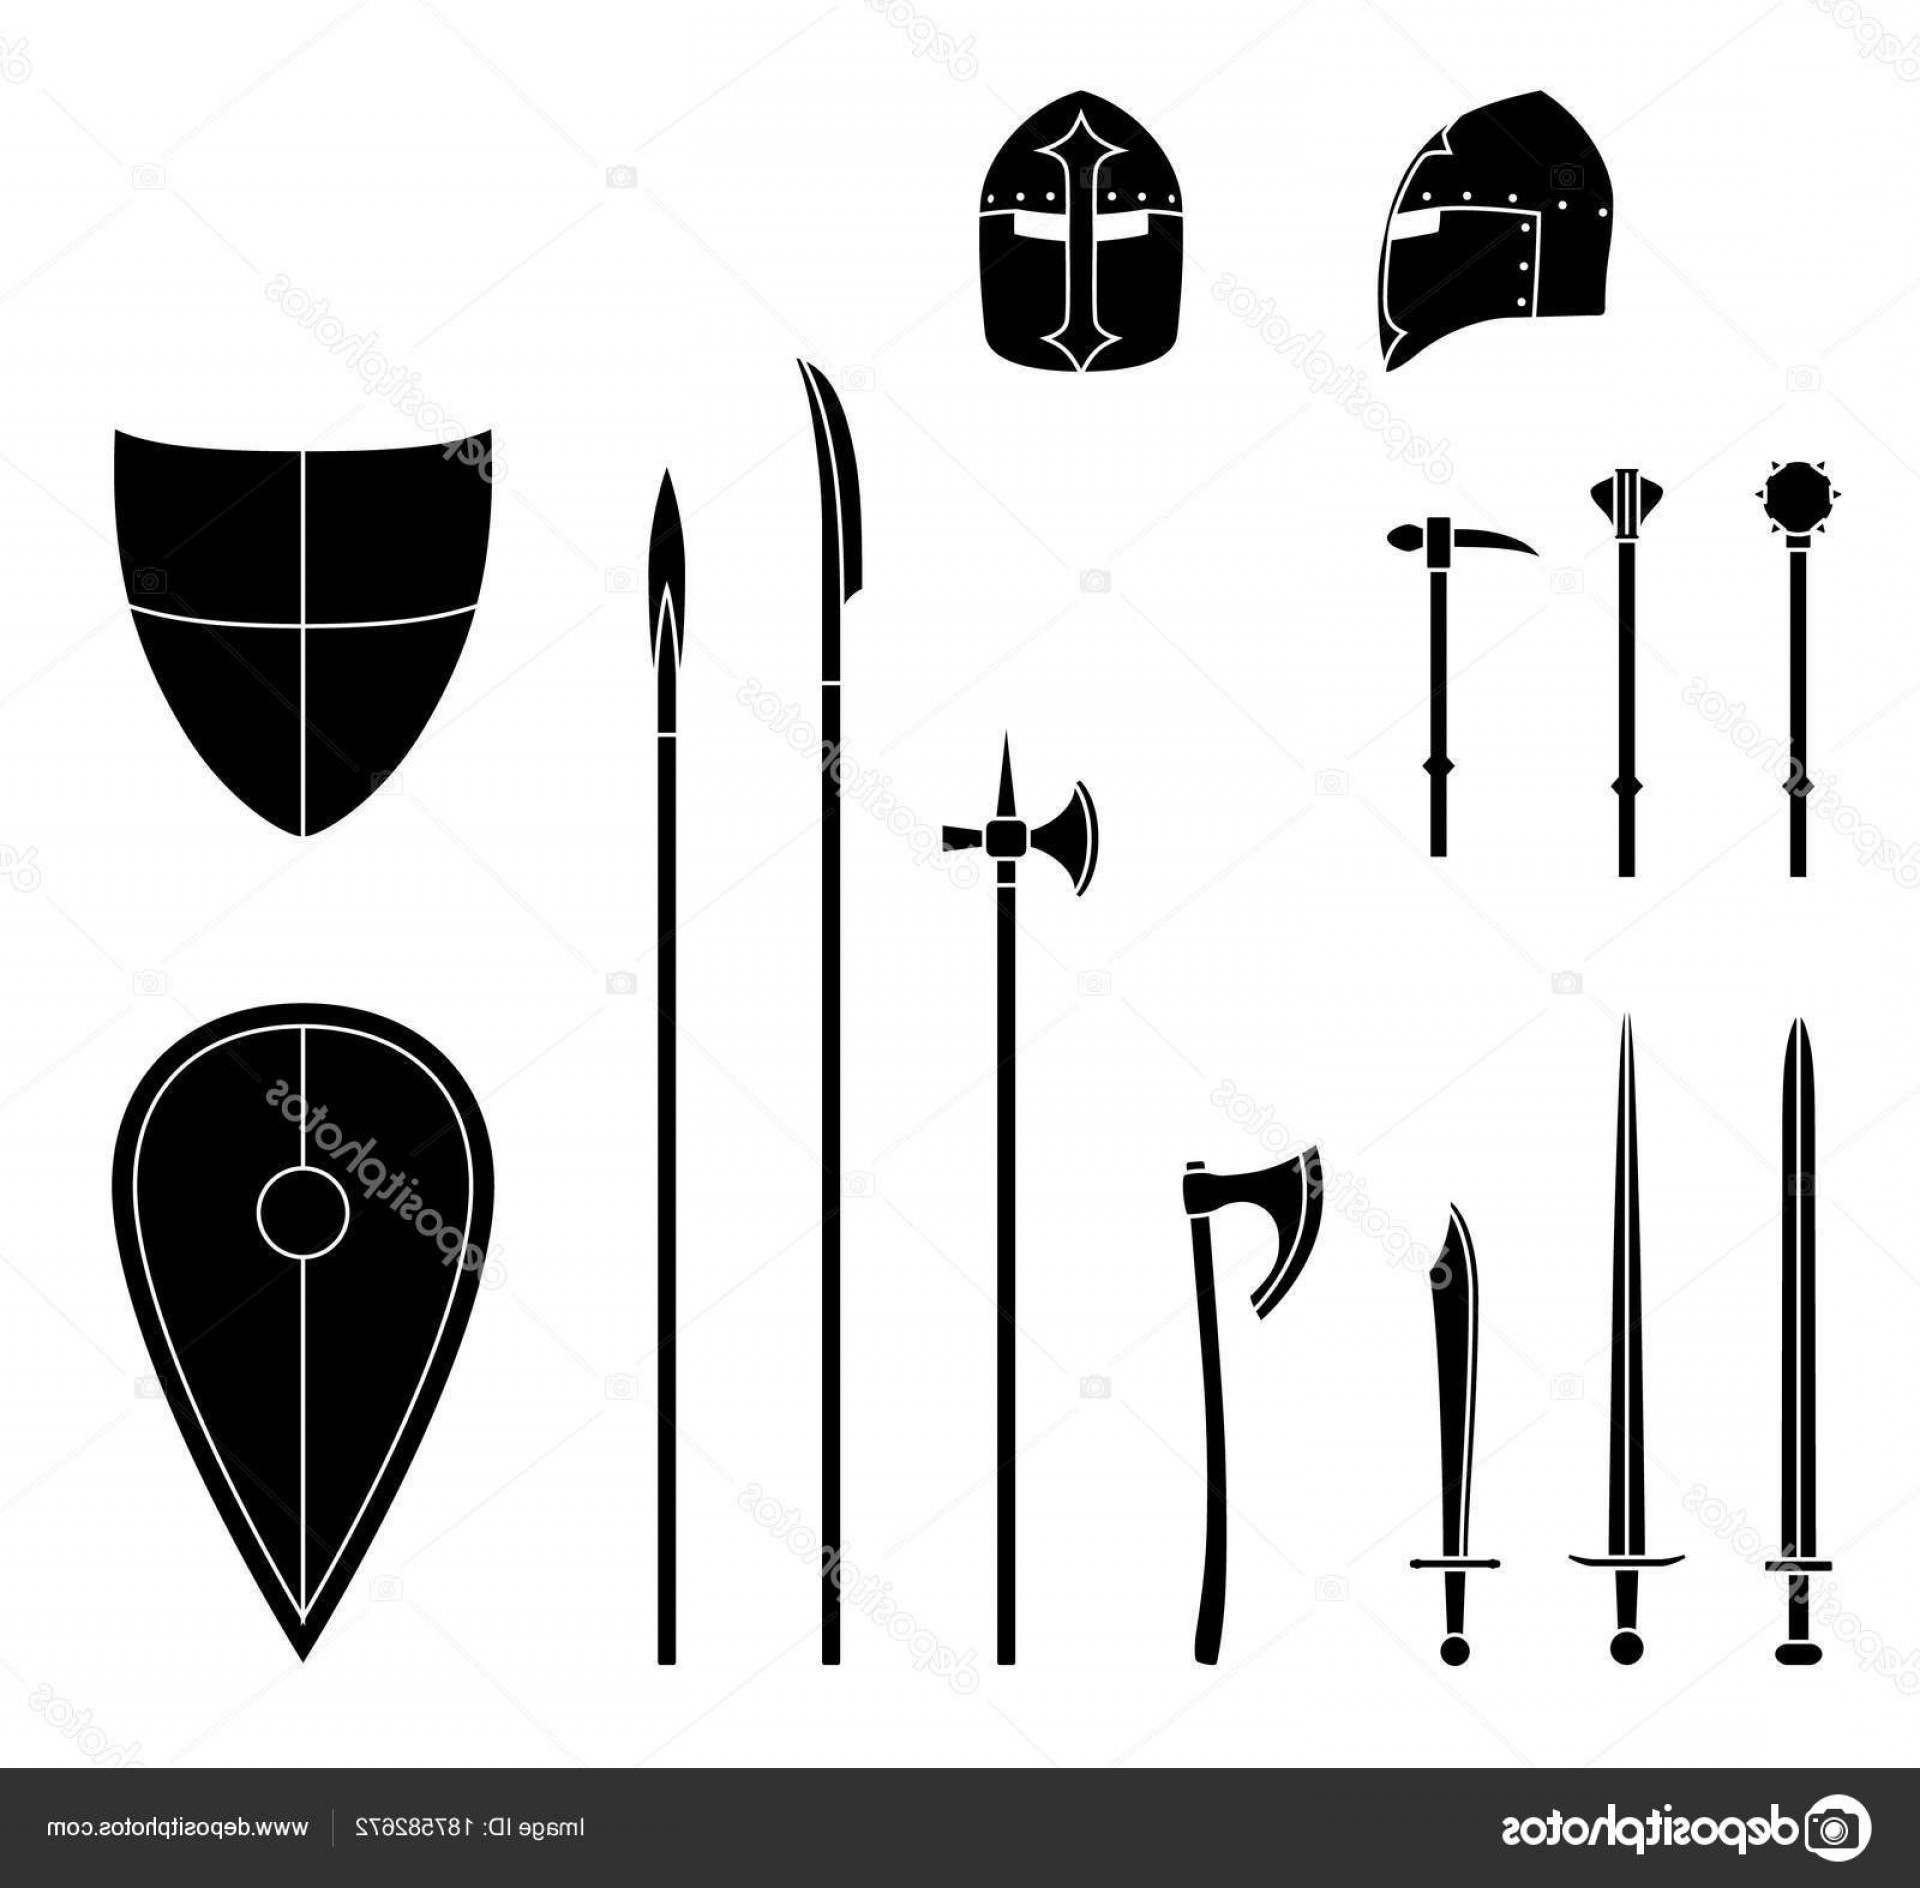 Pike Spear Vector: Stock Illustration Medieval Weapons And Armors Set